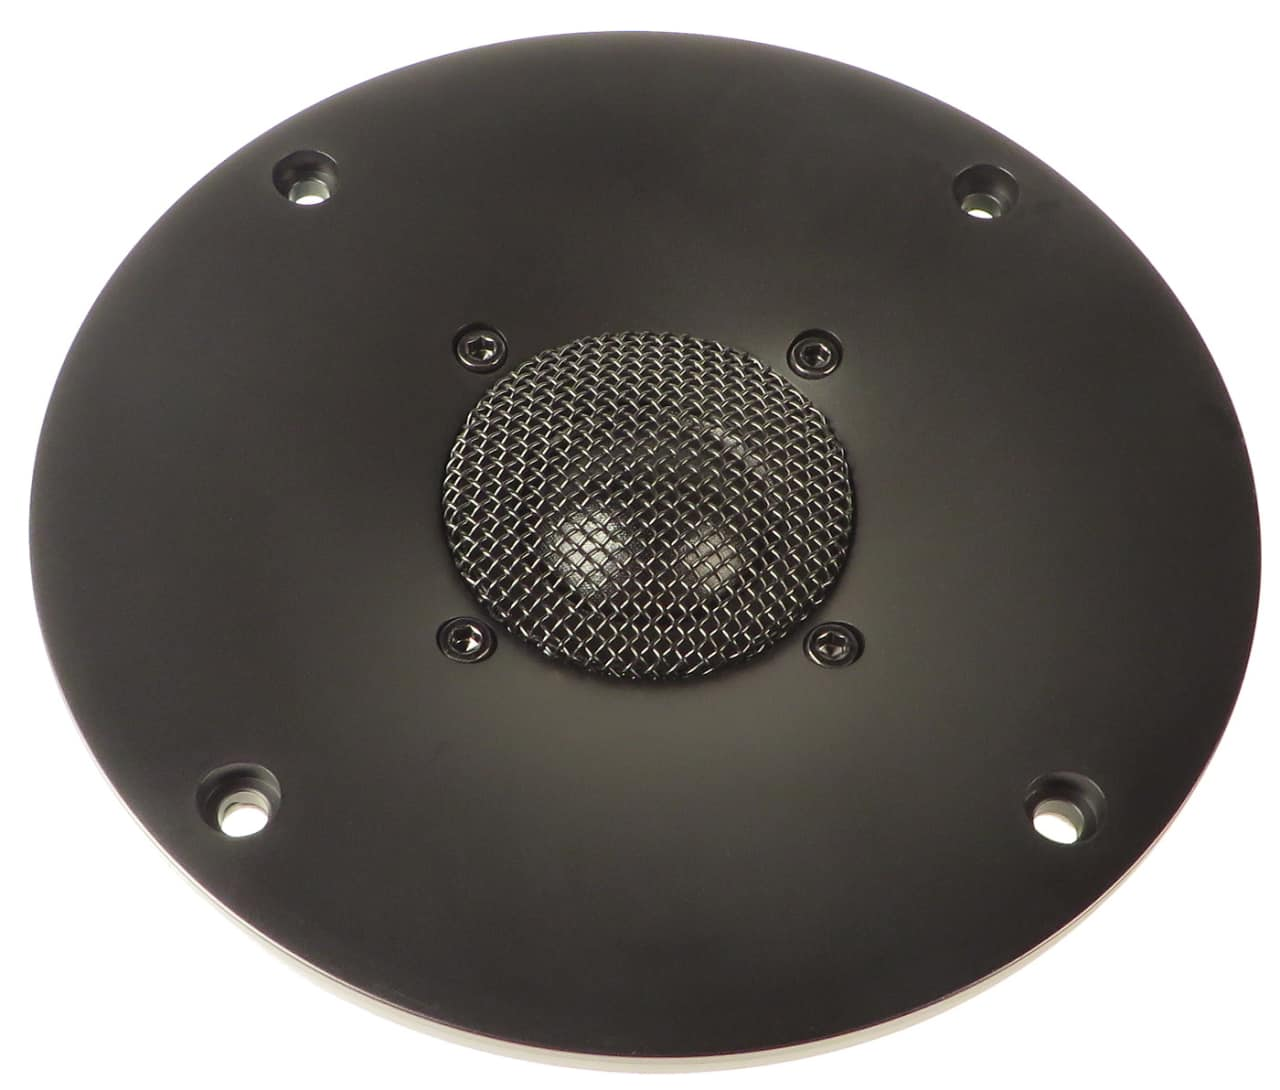 Yamaha x7239a00 tweeter for hs80m reverb for Yamaha hs80m specs